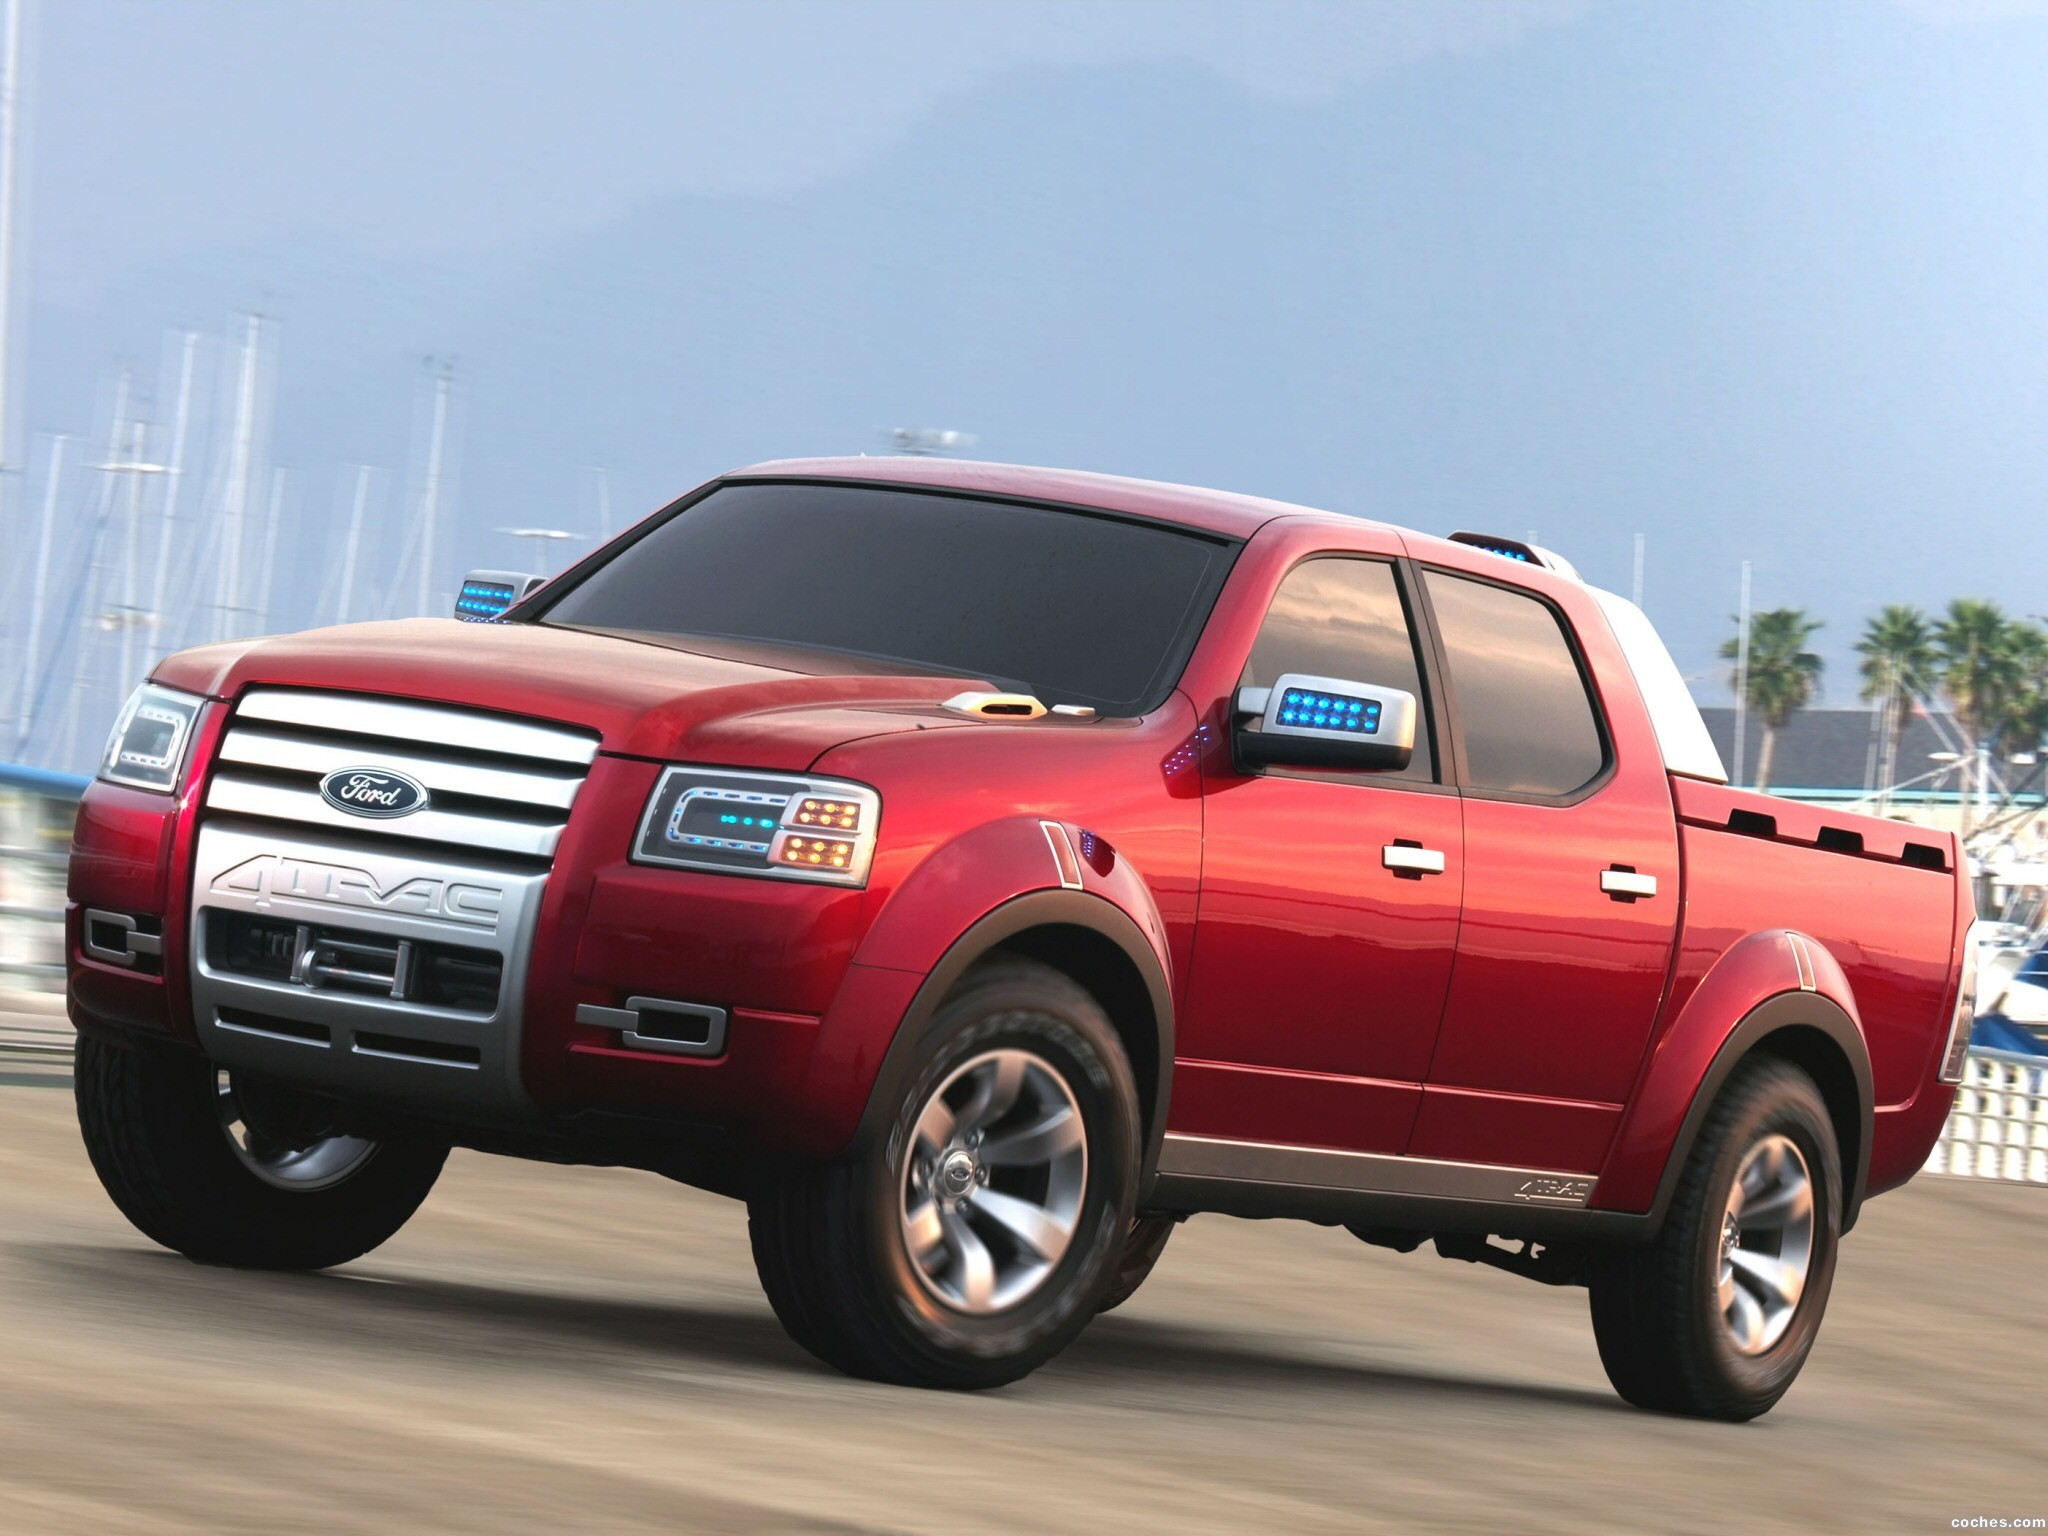 Fotos de Ford 4Trac Pick-Up Concept 2005